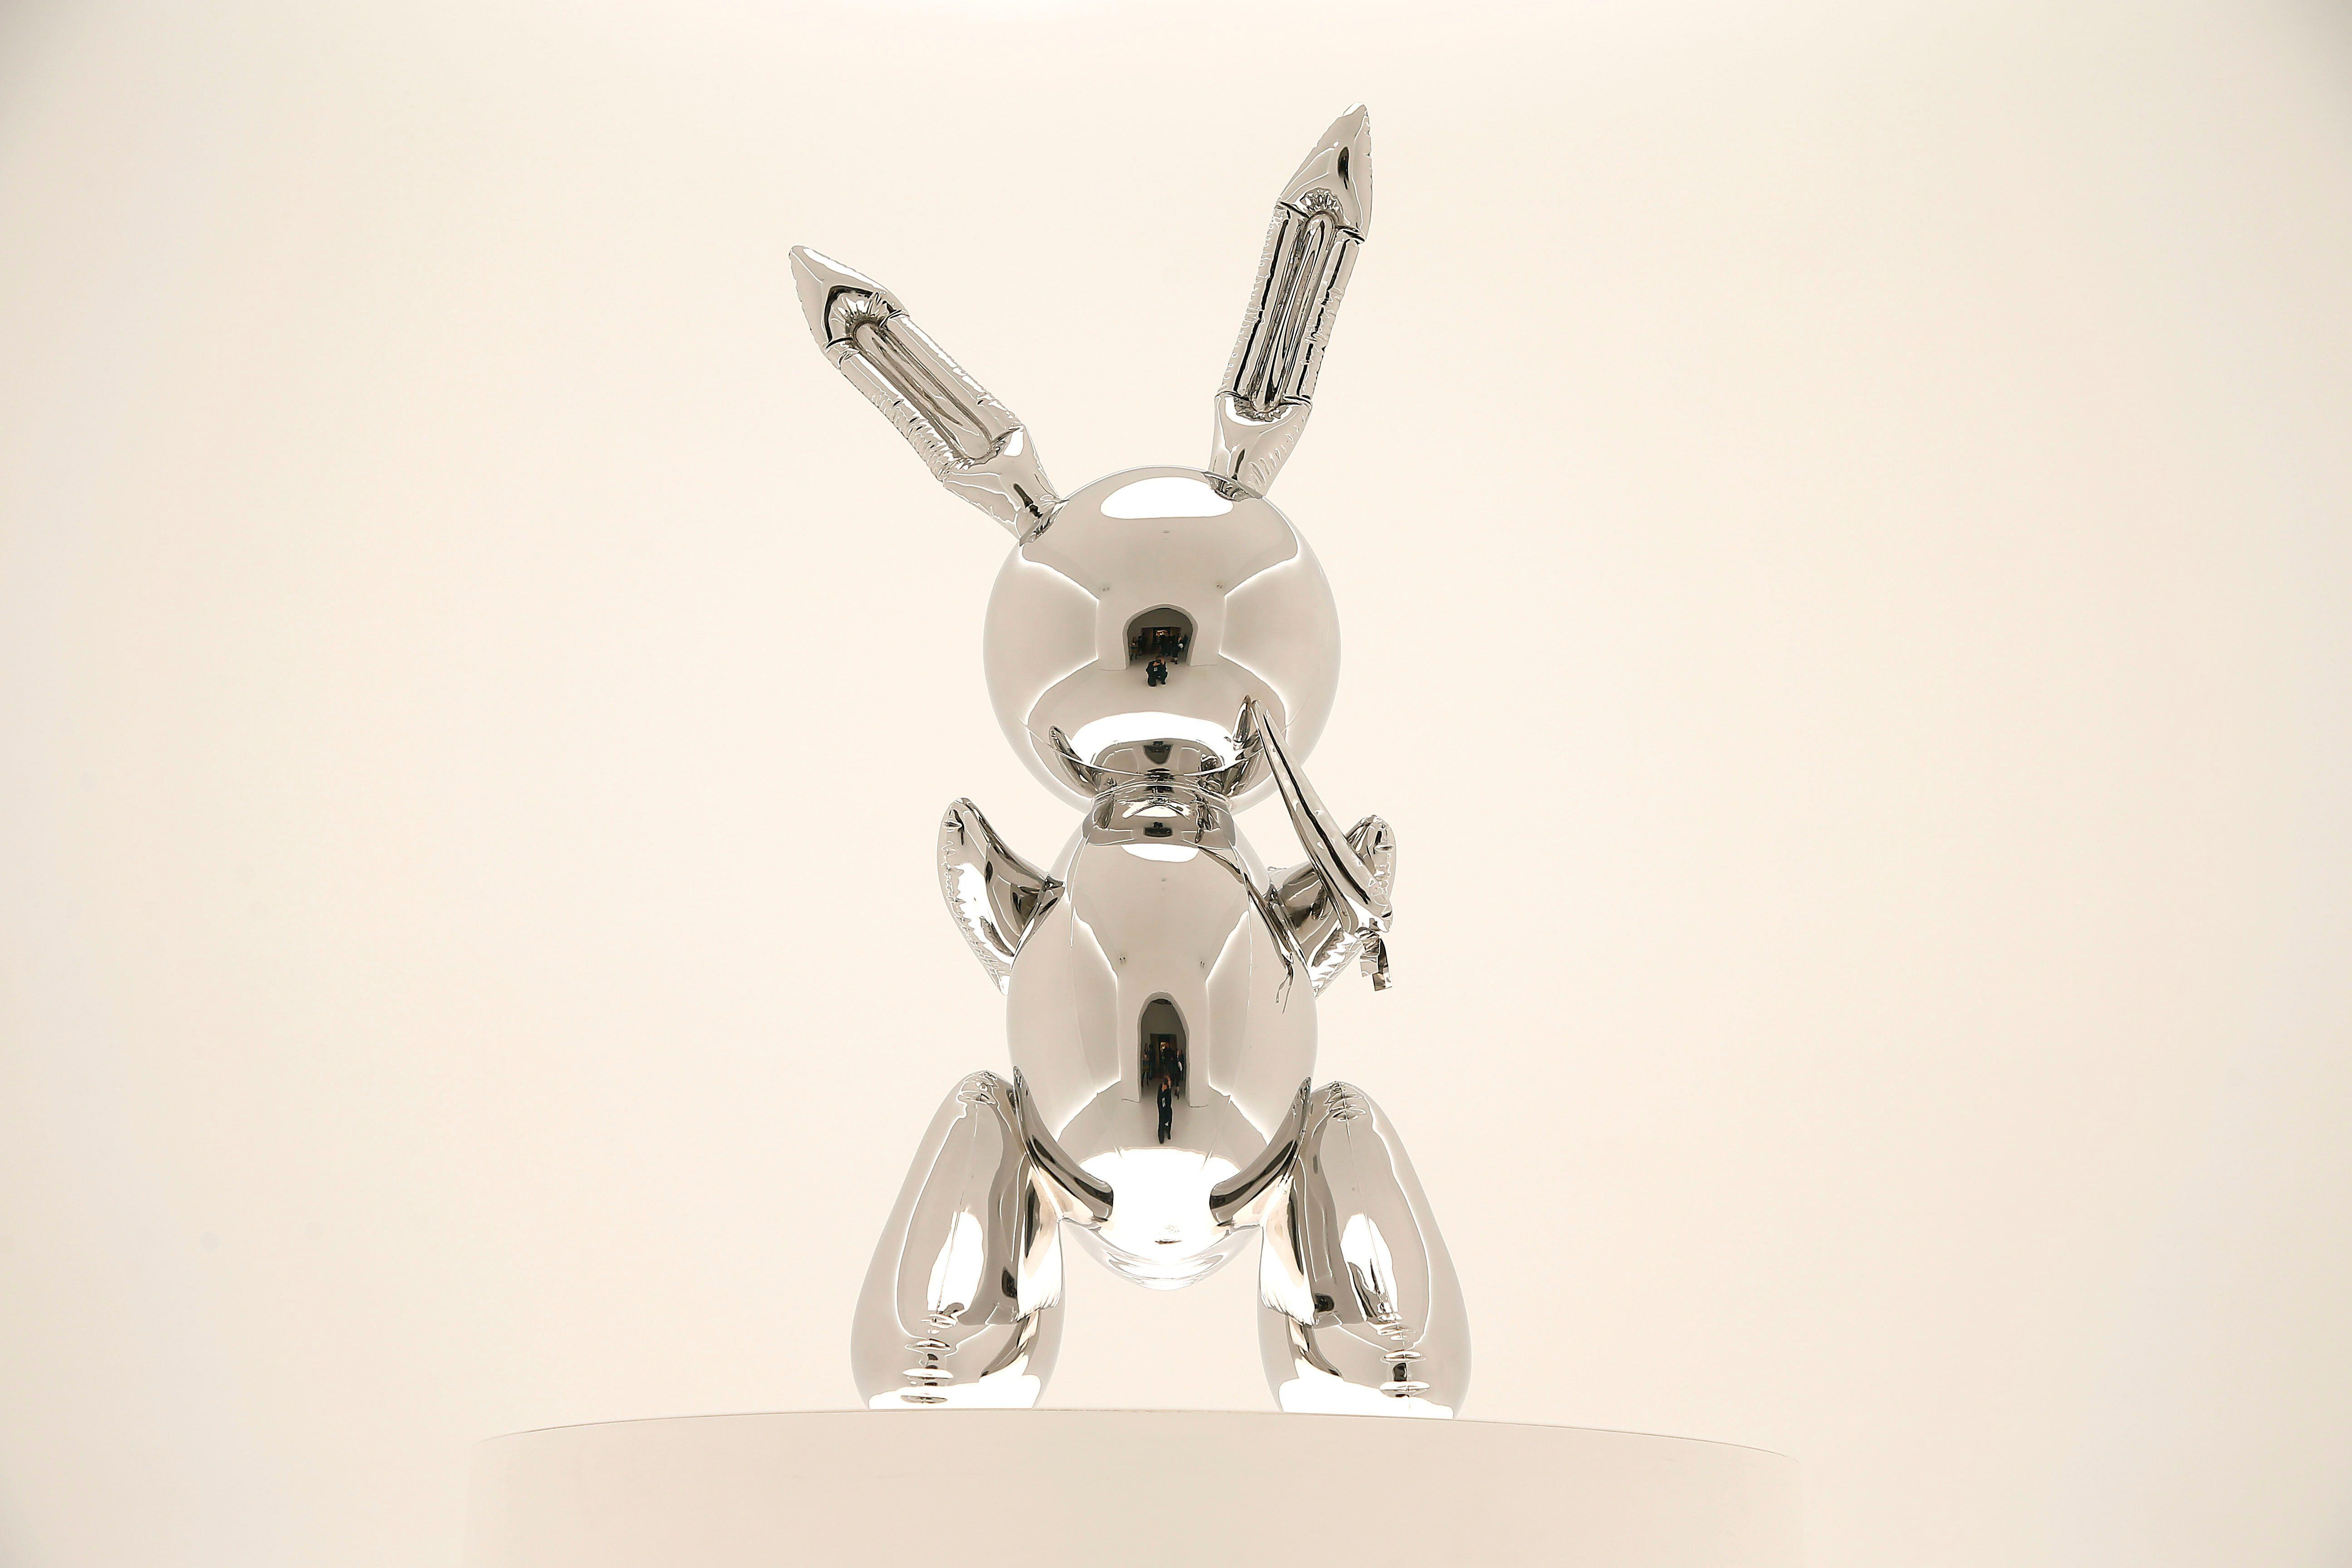 This $132 million stainless steel rabbit broke a global auction record